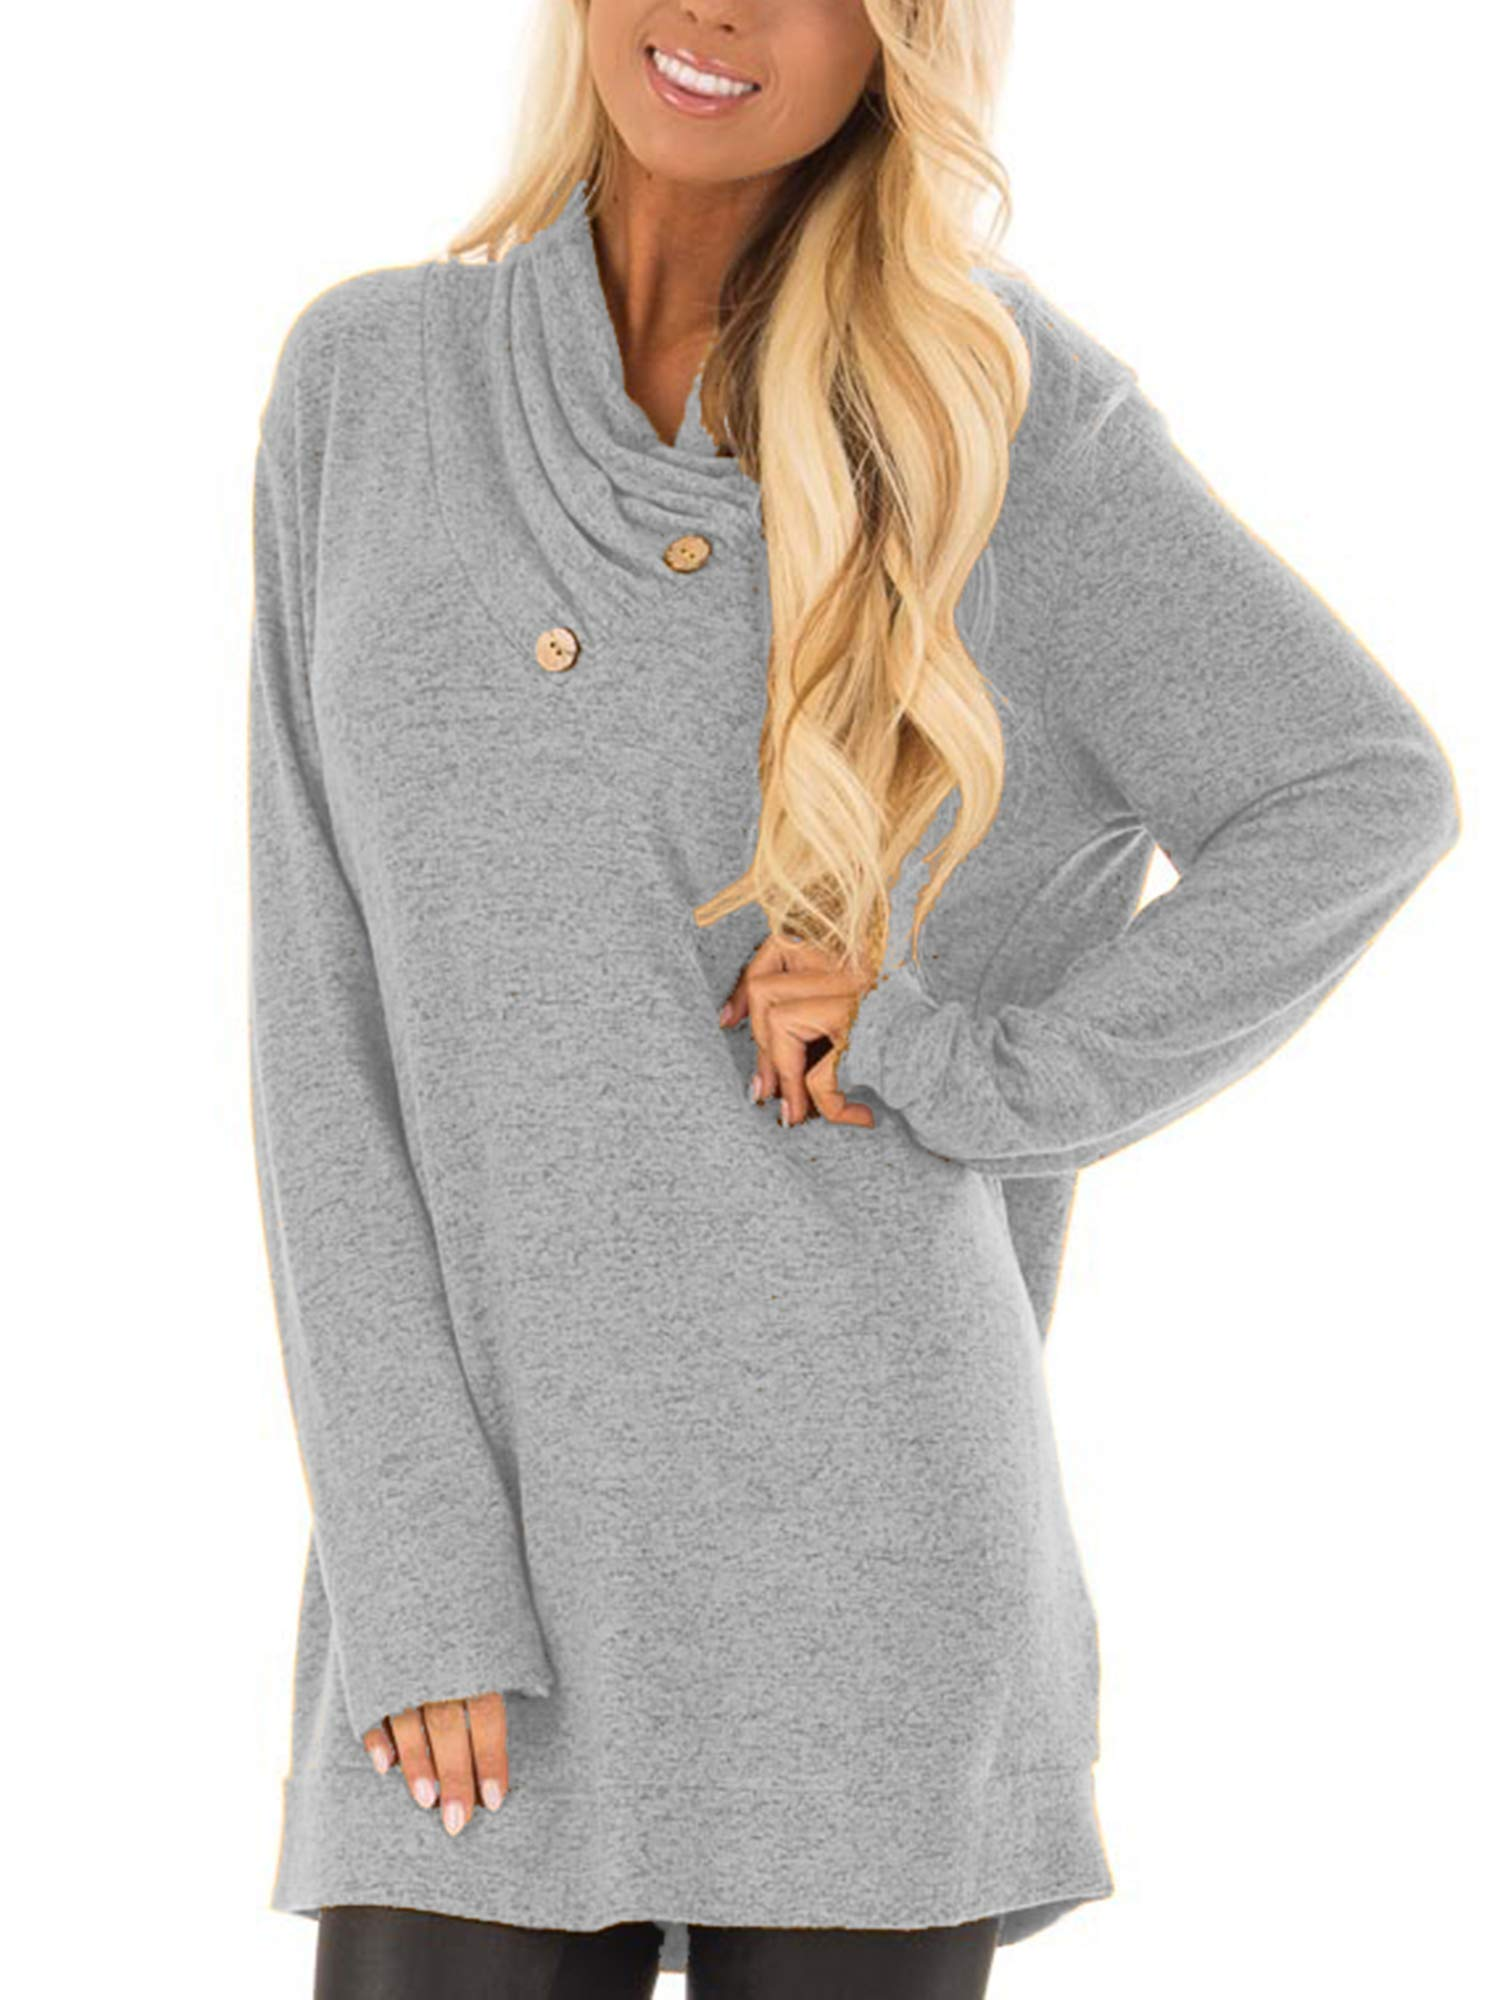 Hount Womens Tunic Top Long Sleeve Casual Loose Top Shirt with Buttons (X-Large, Gray)